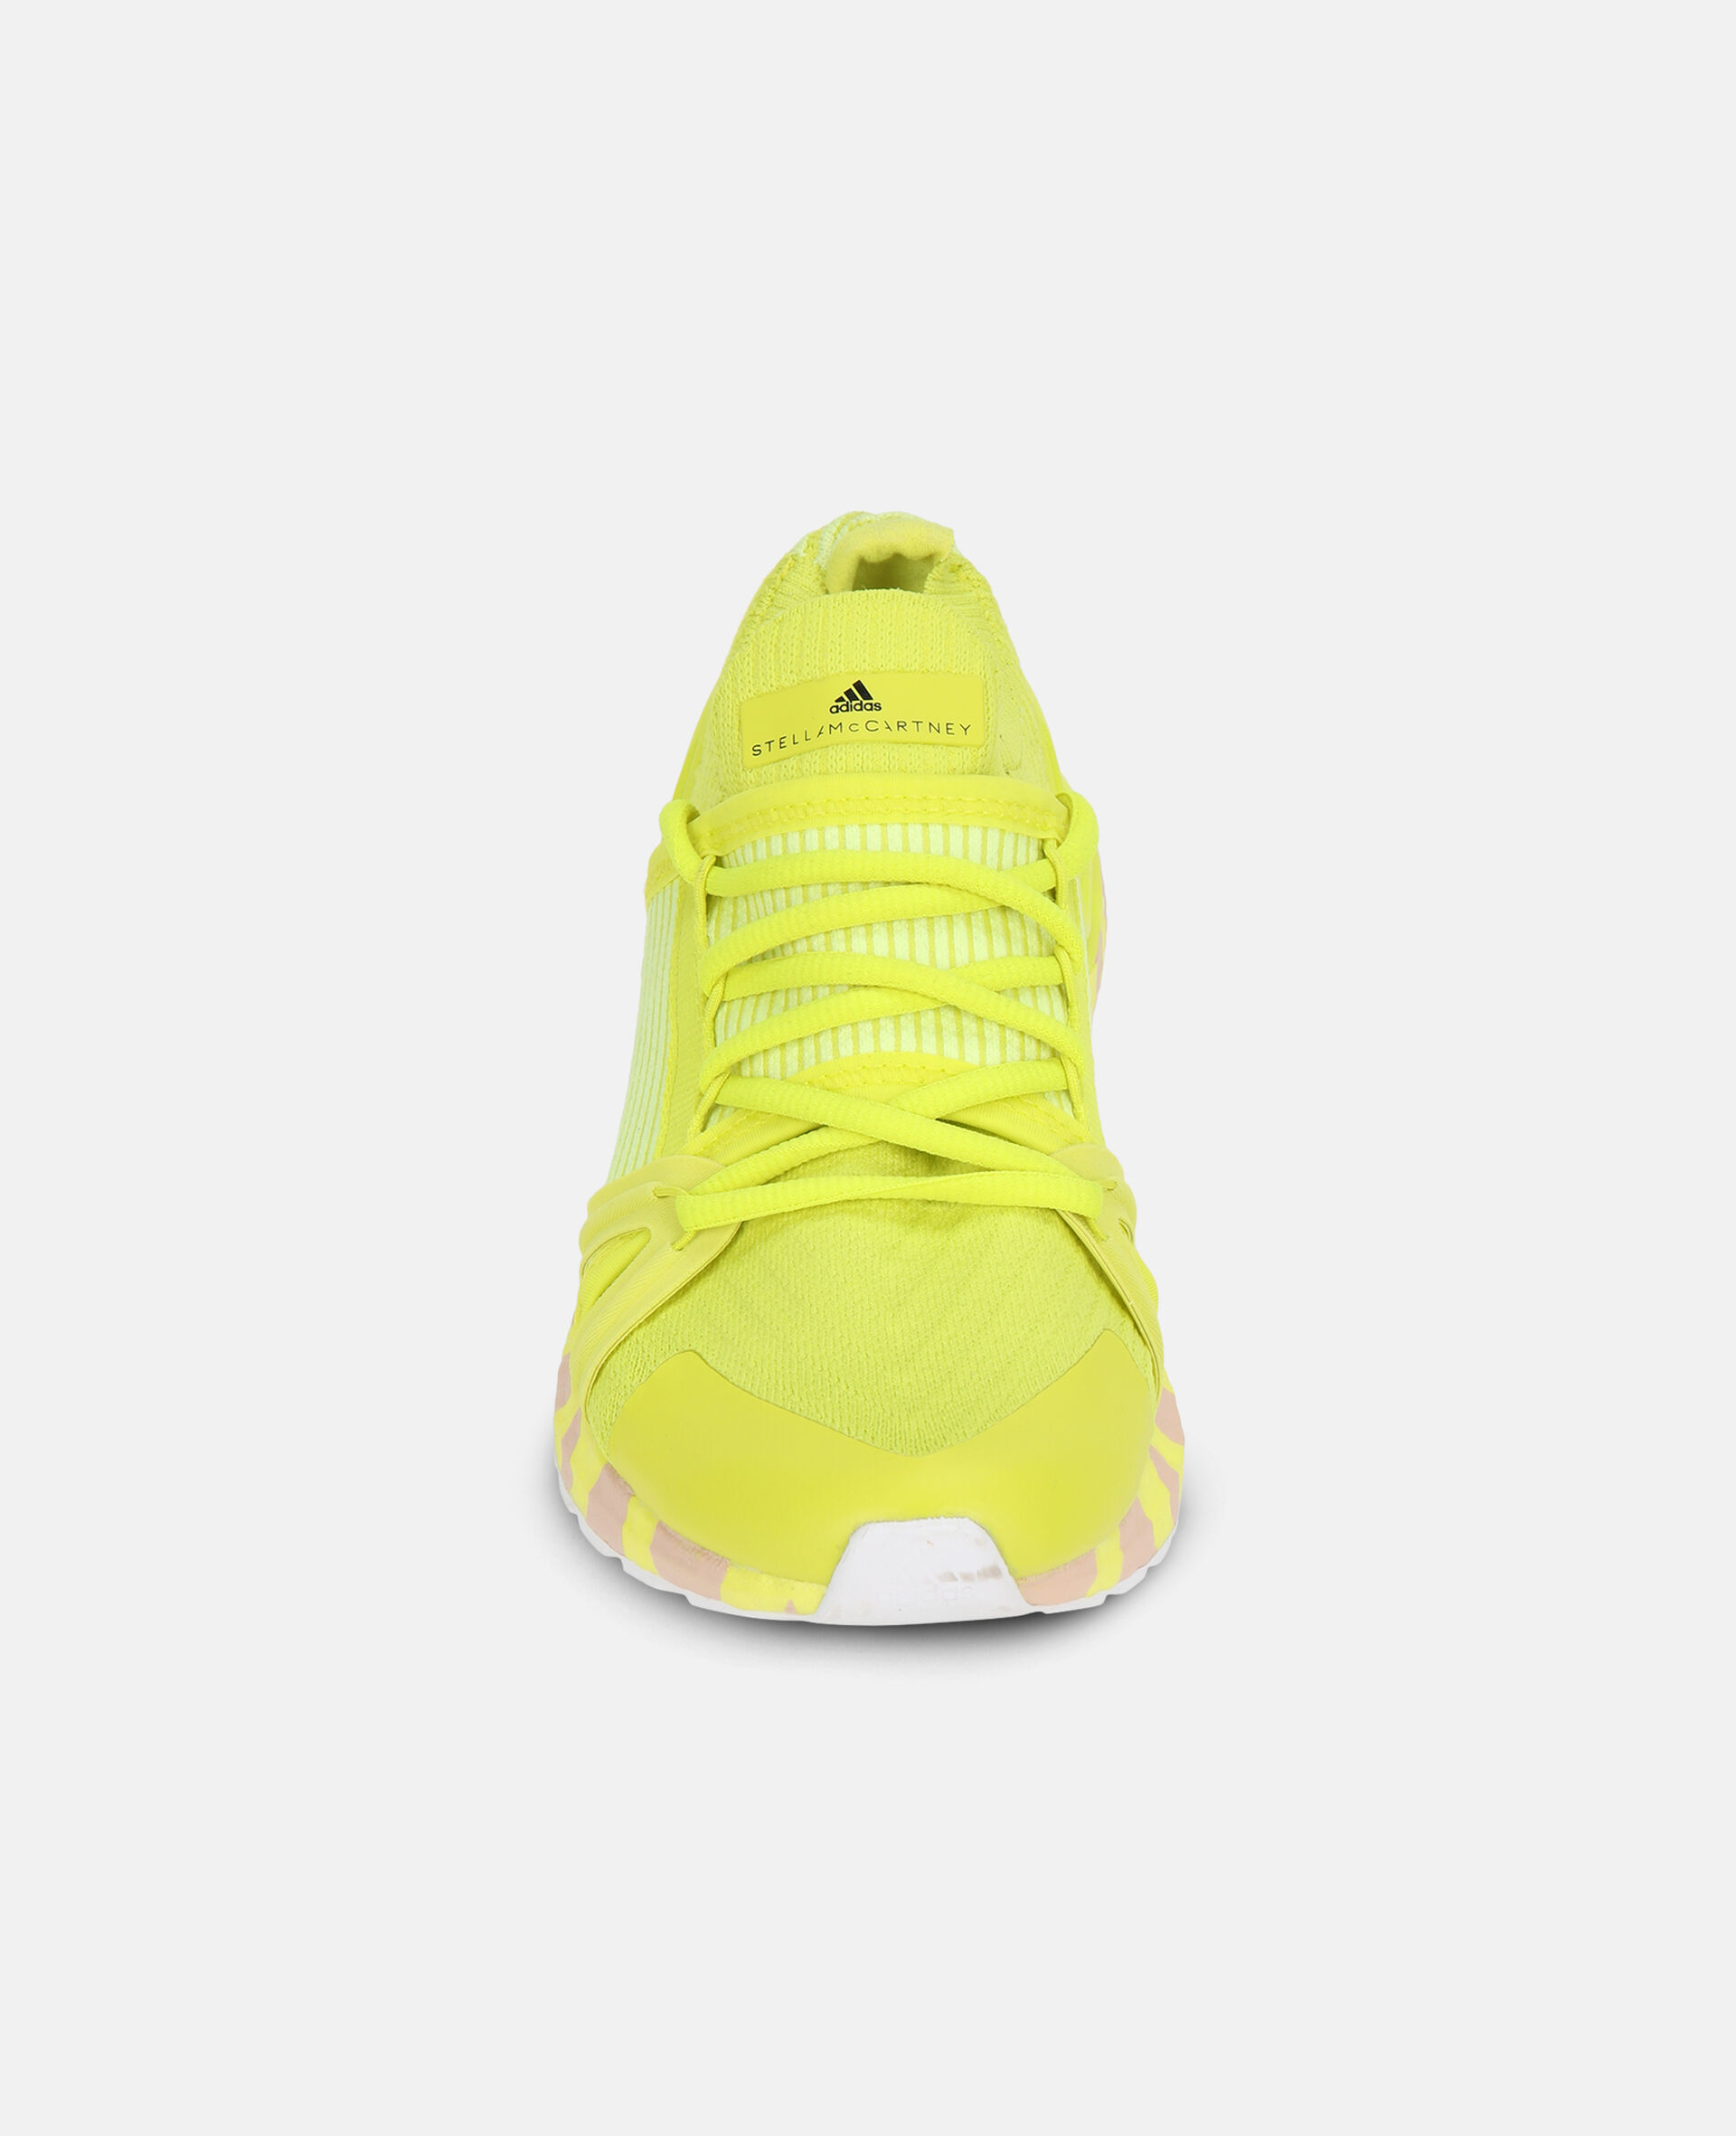 Yellow Ultraboost 20 Sneakers  -Yellow-large image number 2